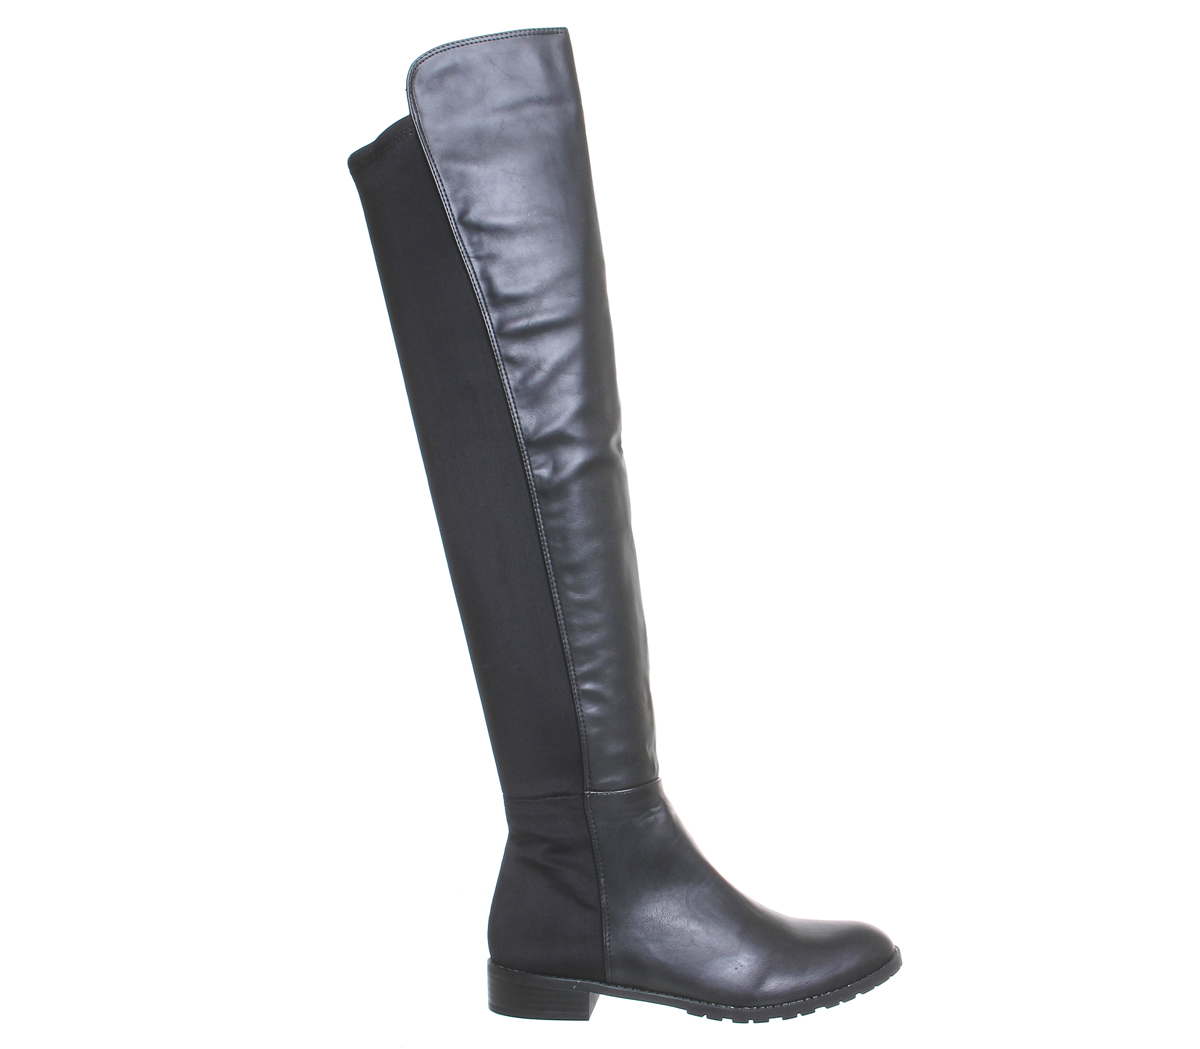 f723bd340a35 Womens Office Kiwi Flat Over The Knee Boots Black Boots